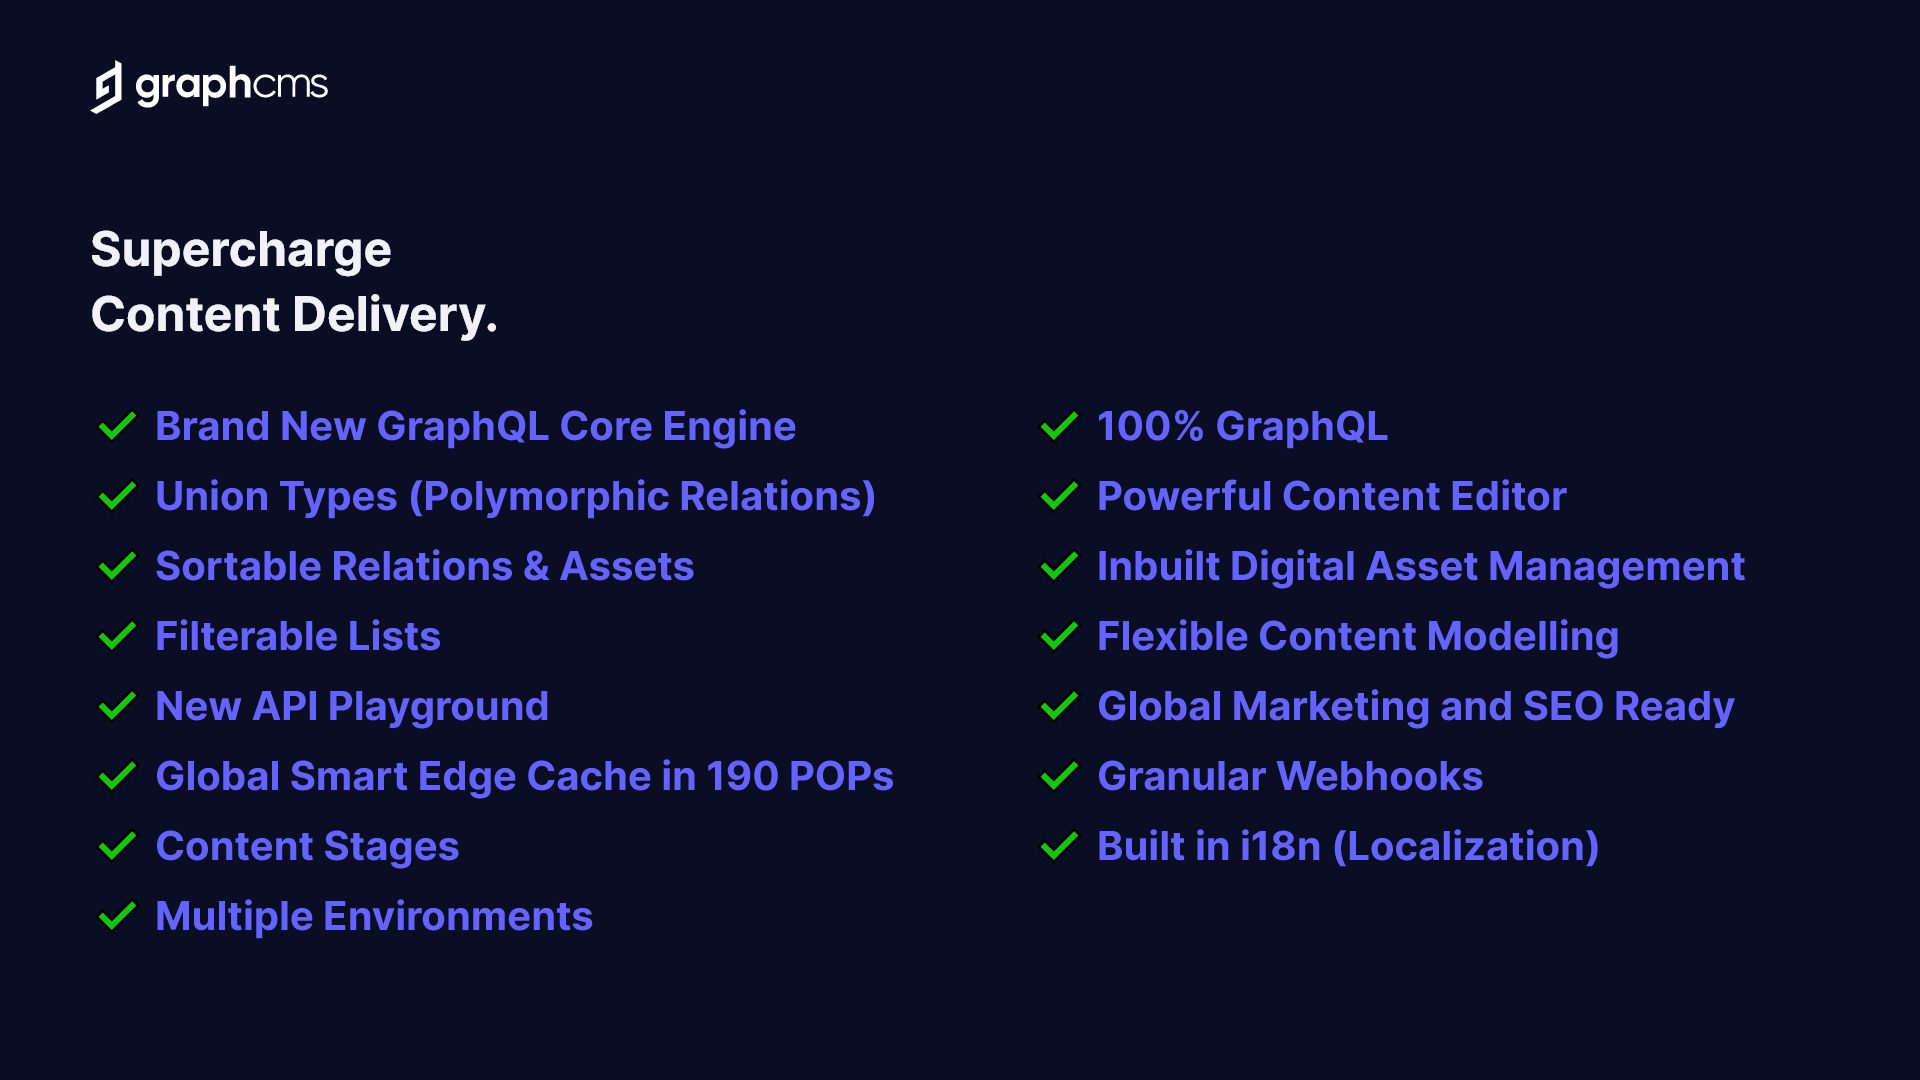 GraphCMS screenshot: GraphCMS comes with enterprise-tested features, including global caching, localization, union types, content stages, multiple environments, granular webhooks, inbuilt asset management, and more.